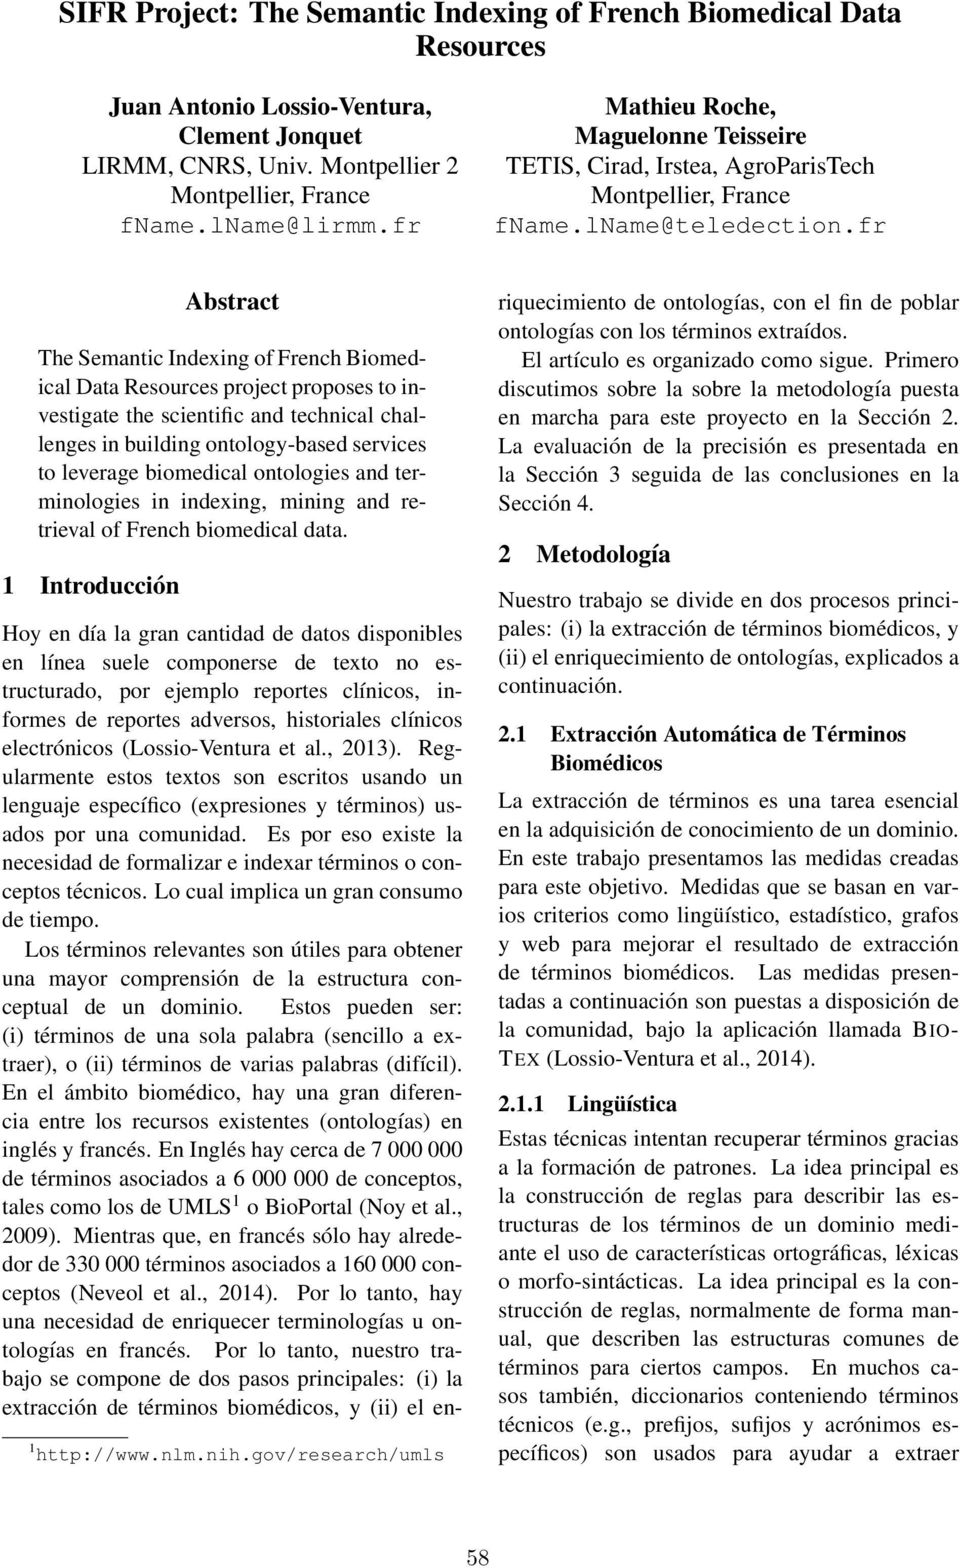 fr Abstract The Semantic Indexing of French Biomedical Data Resources project proposes to investigate the scientific and technical challenges in building ontology-based services to leverage